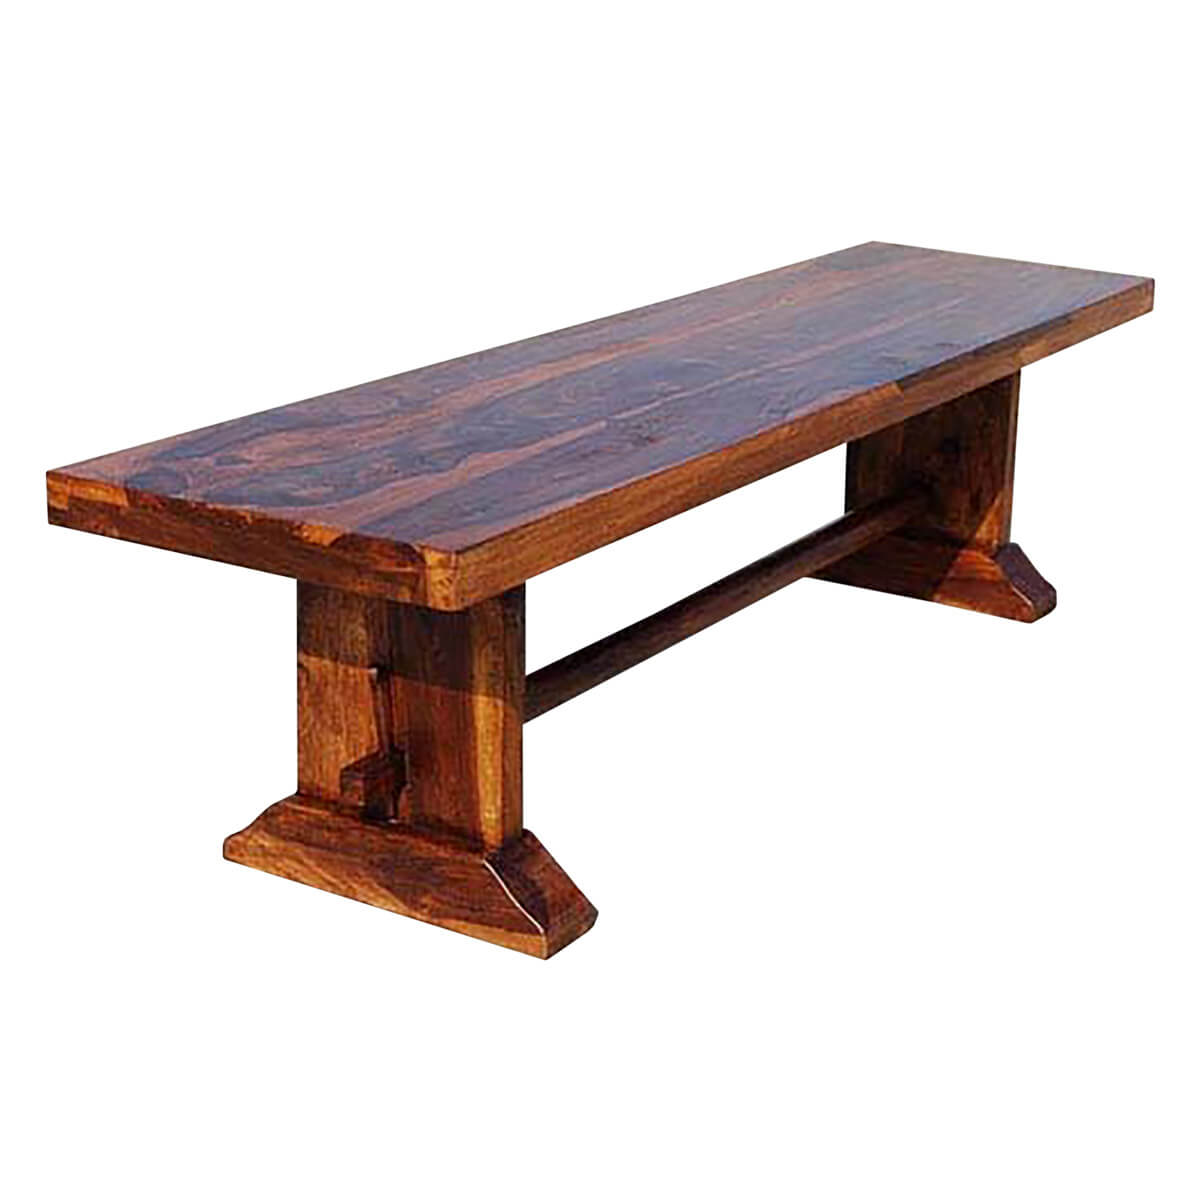 Yohan Woodworking Project Guide Free Indoor Wood Bench Plans